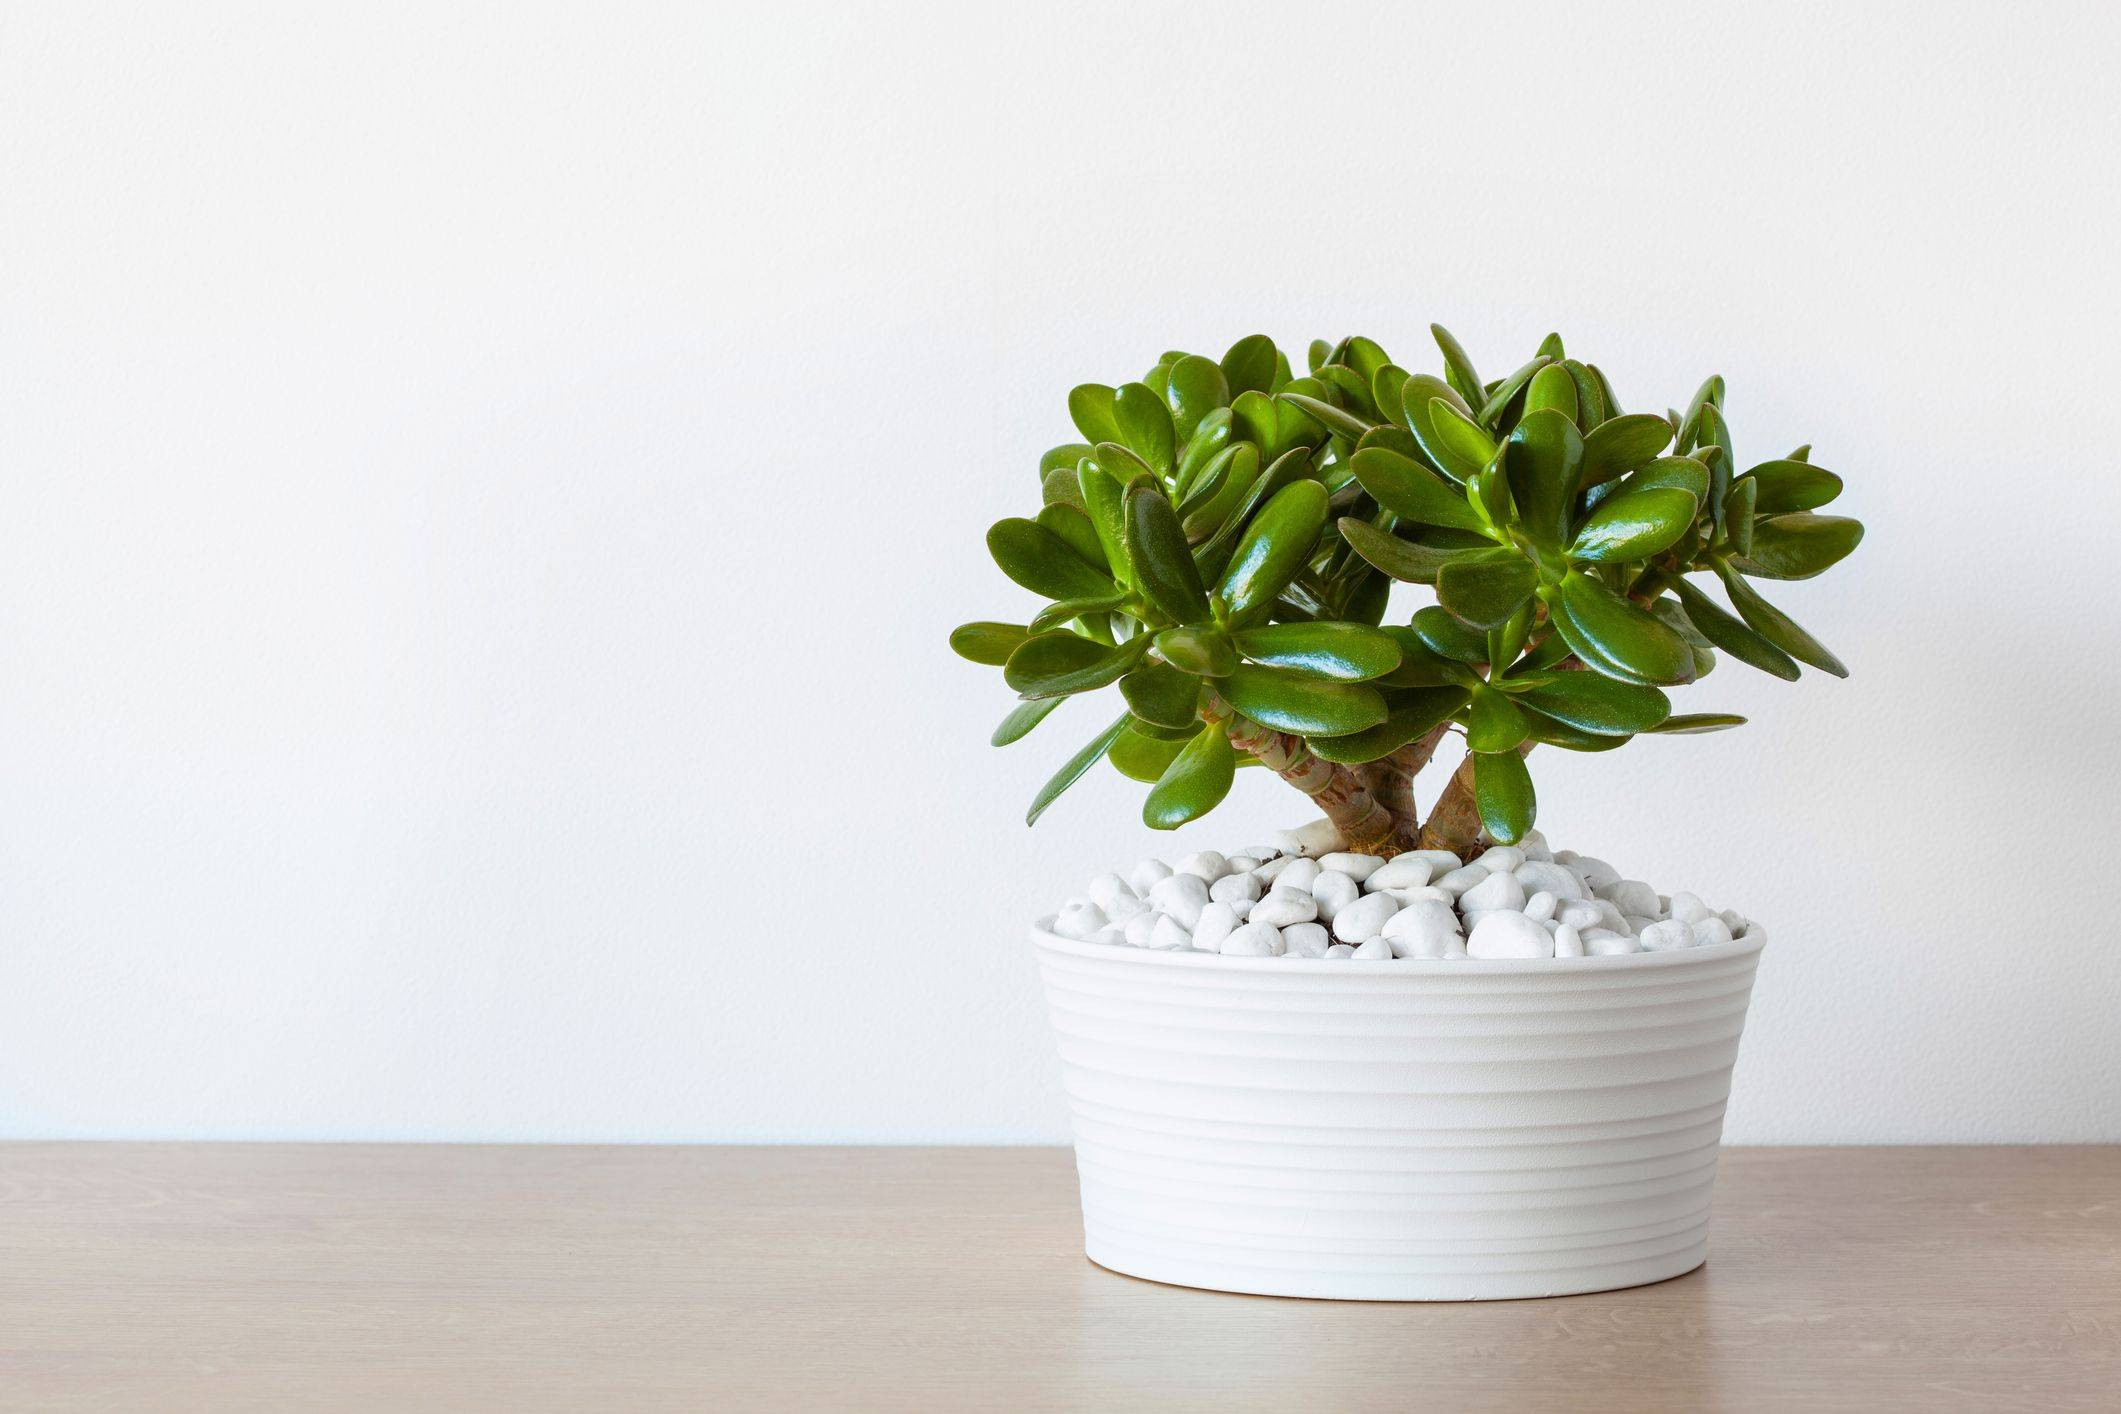 jade plant in white pot with white stones